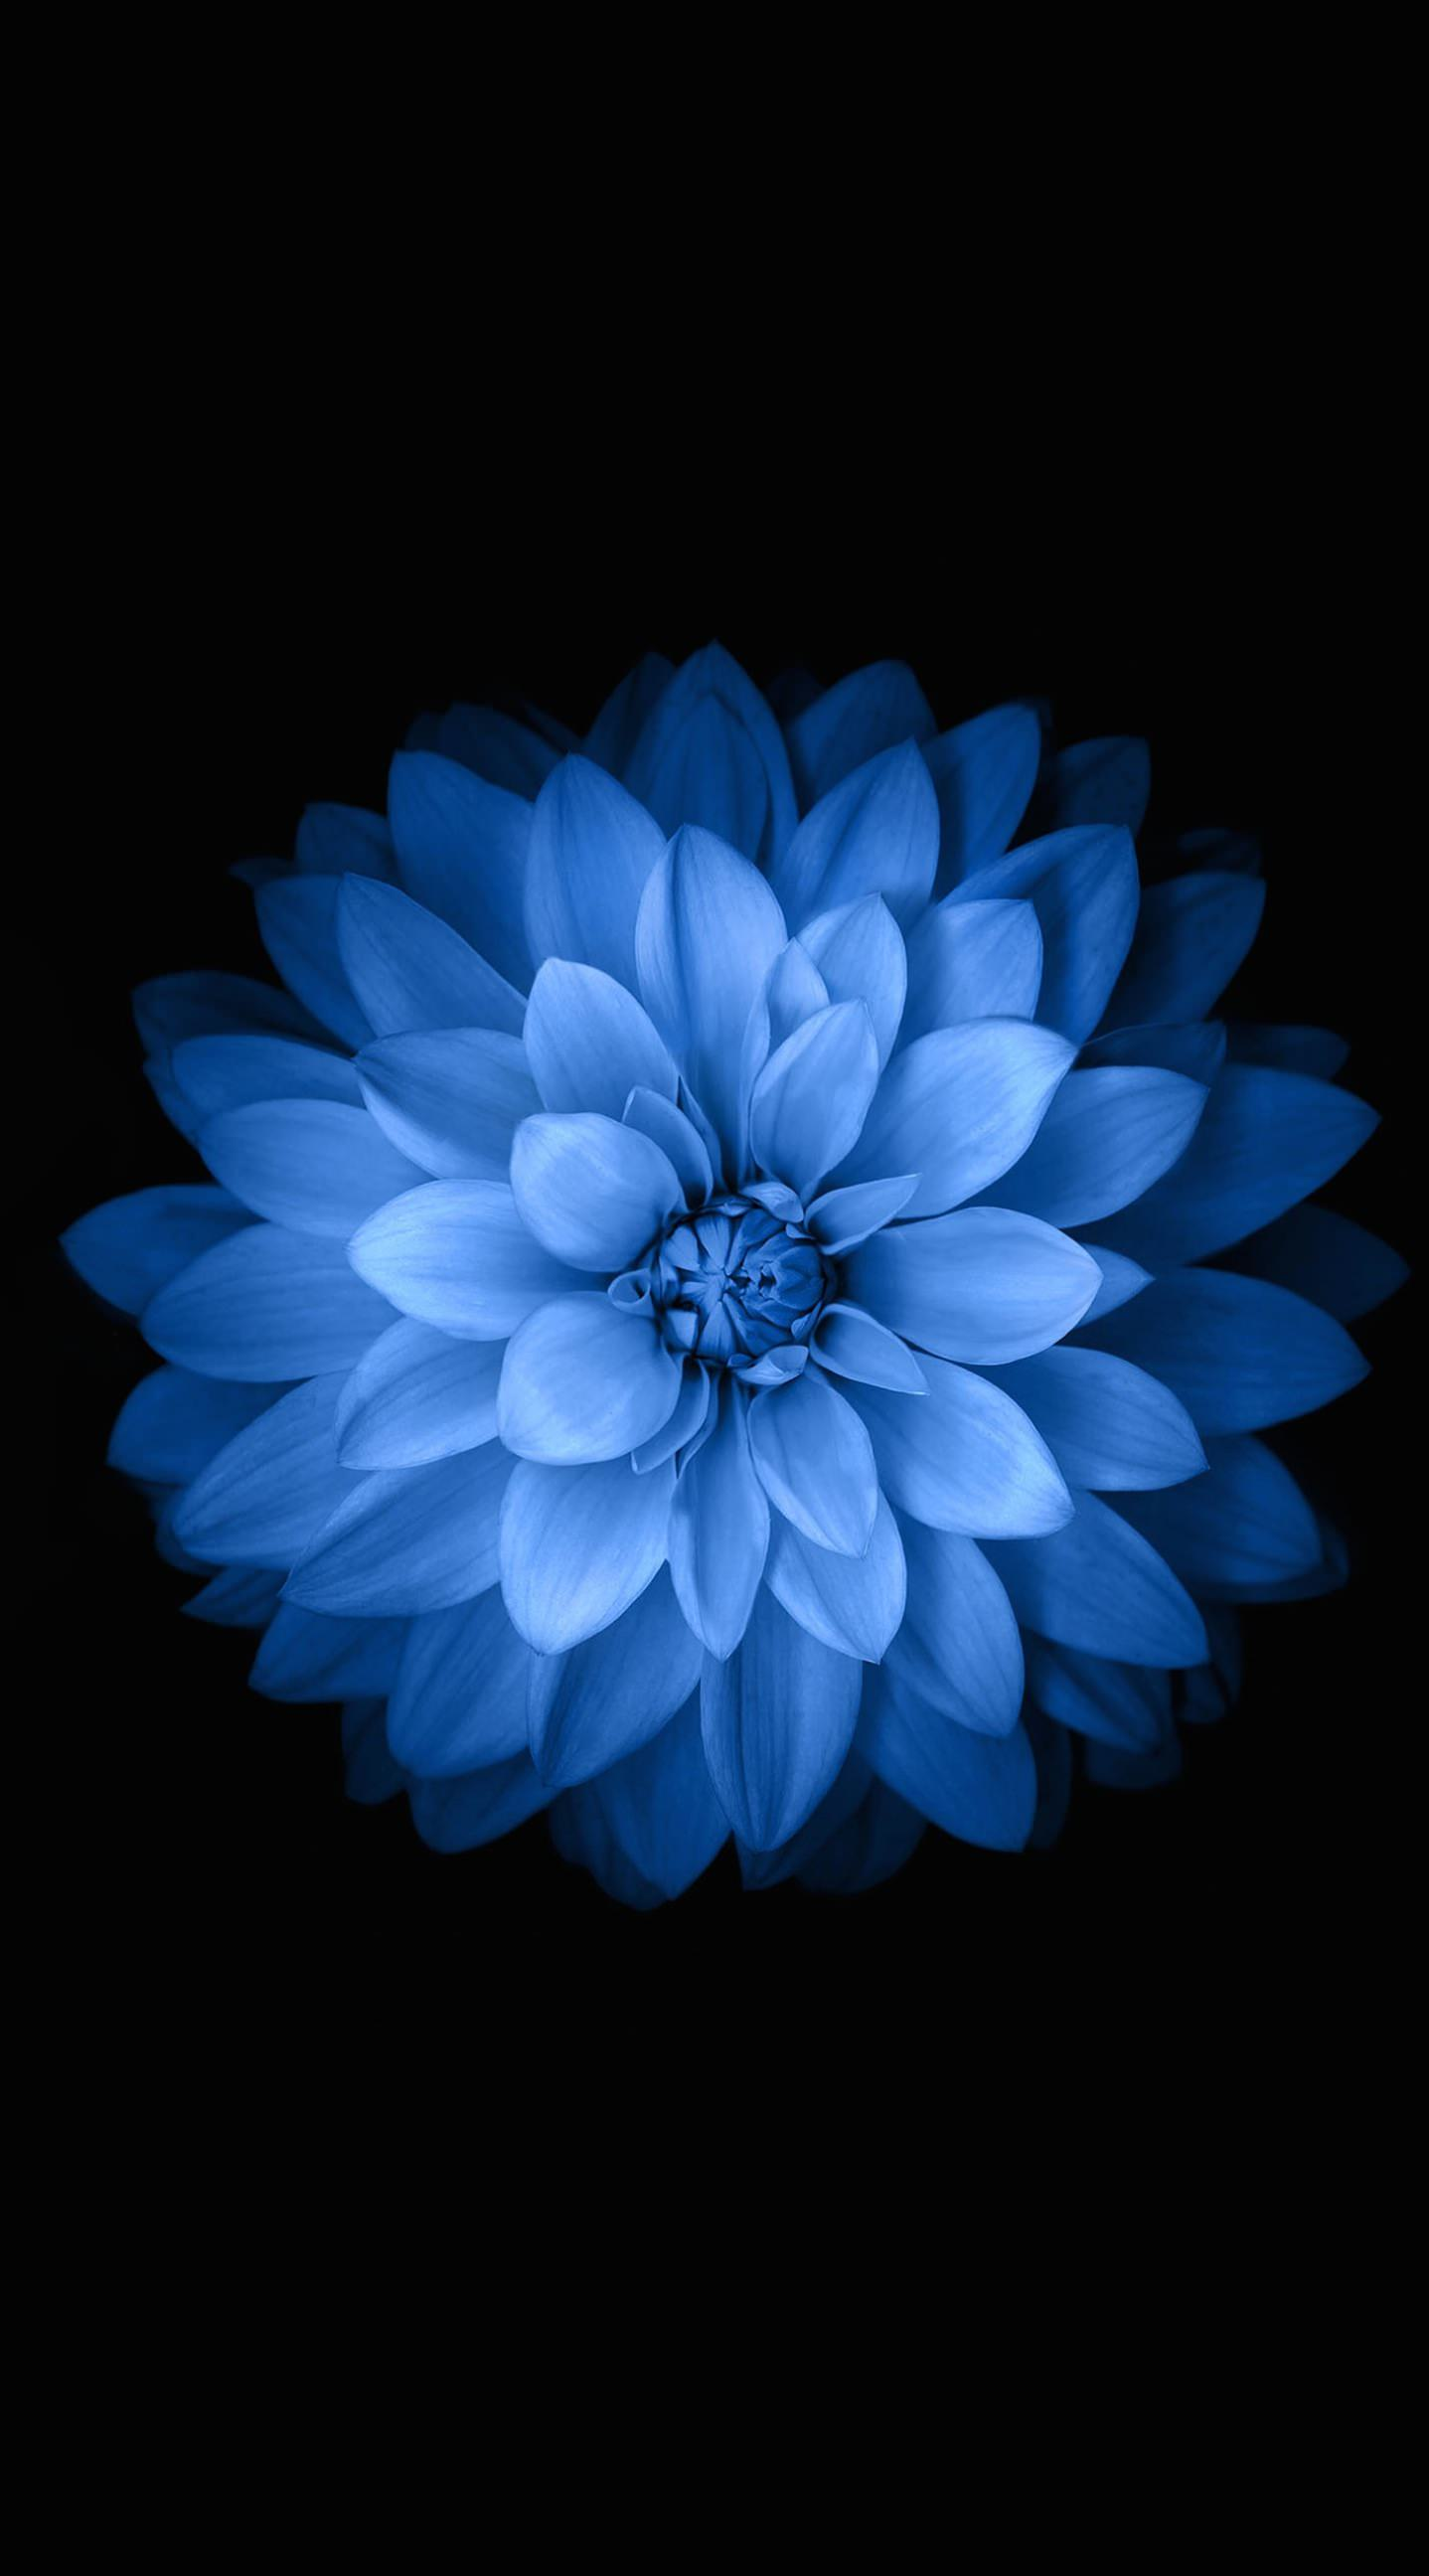 Iphone wallpaper ios 7 tumblr - Blue Black Flower Wallpaper Sc Iphone6splus